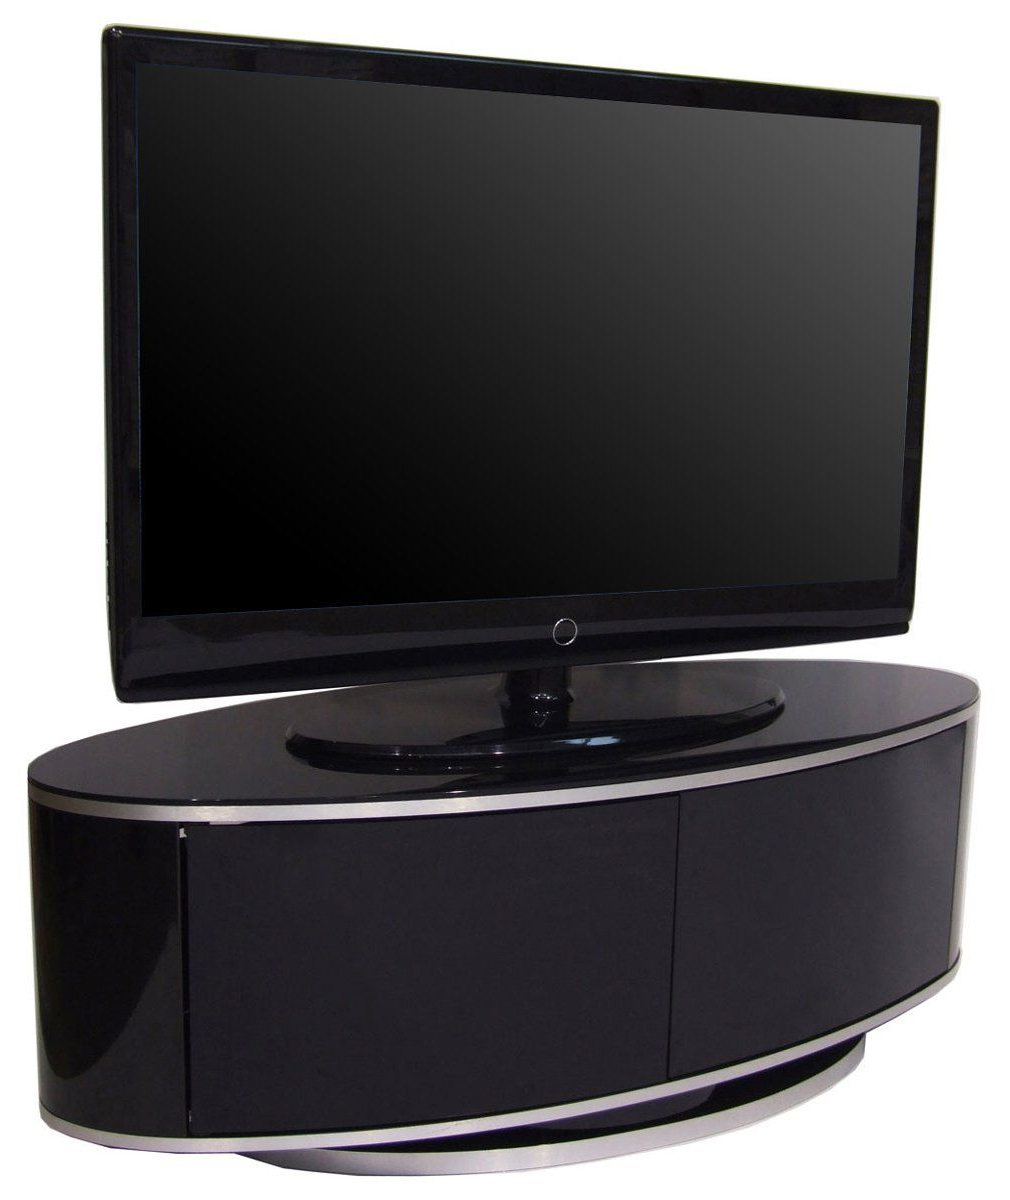 Oval White Tv Stands For Well Liked Mda Designs High Gloss Black Oval Tv Stand With Swivel Base And (Gallery 10 of 20)